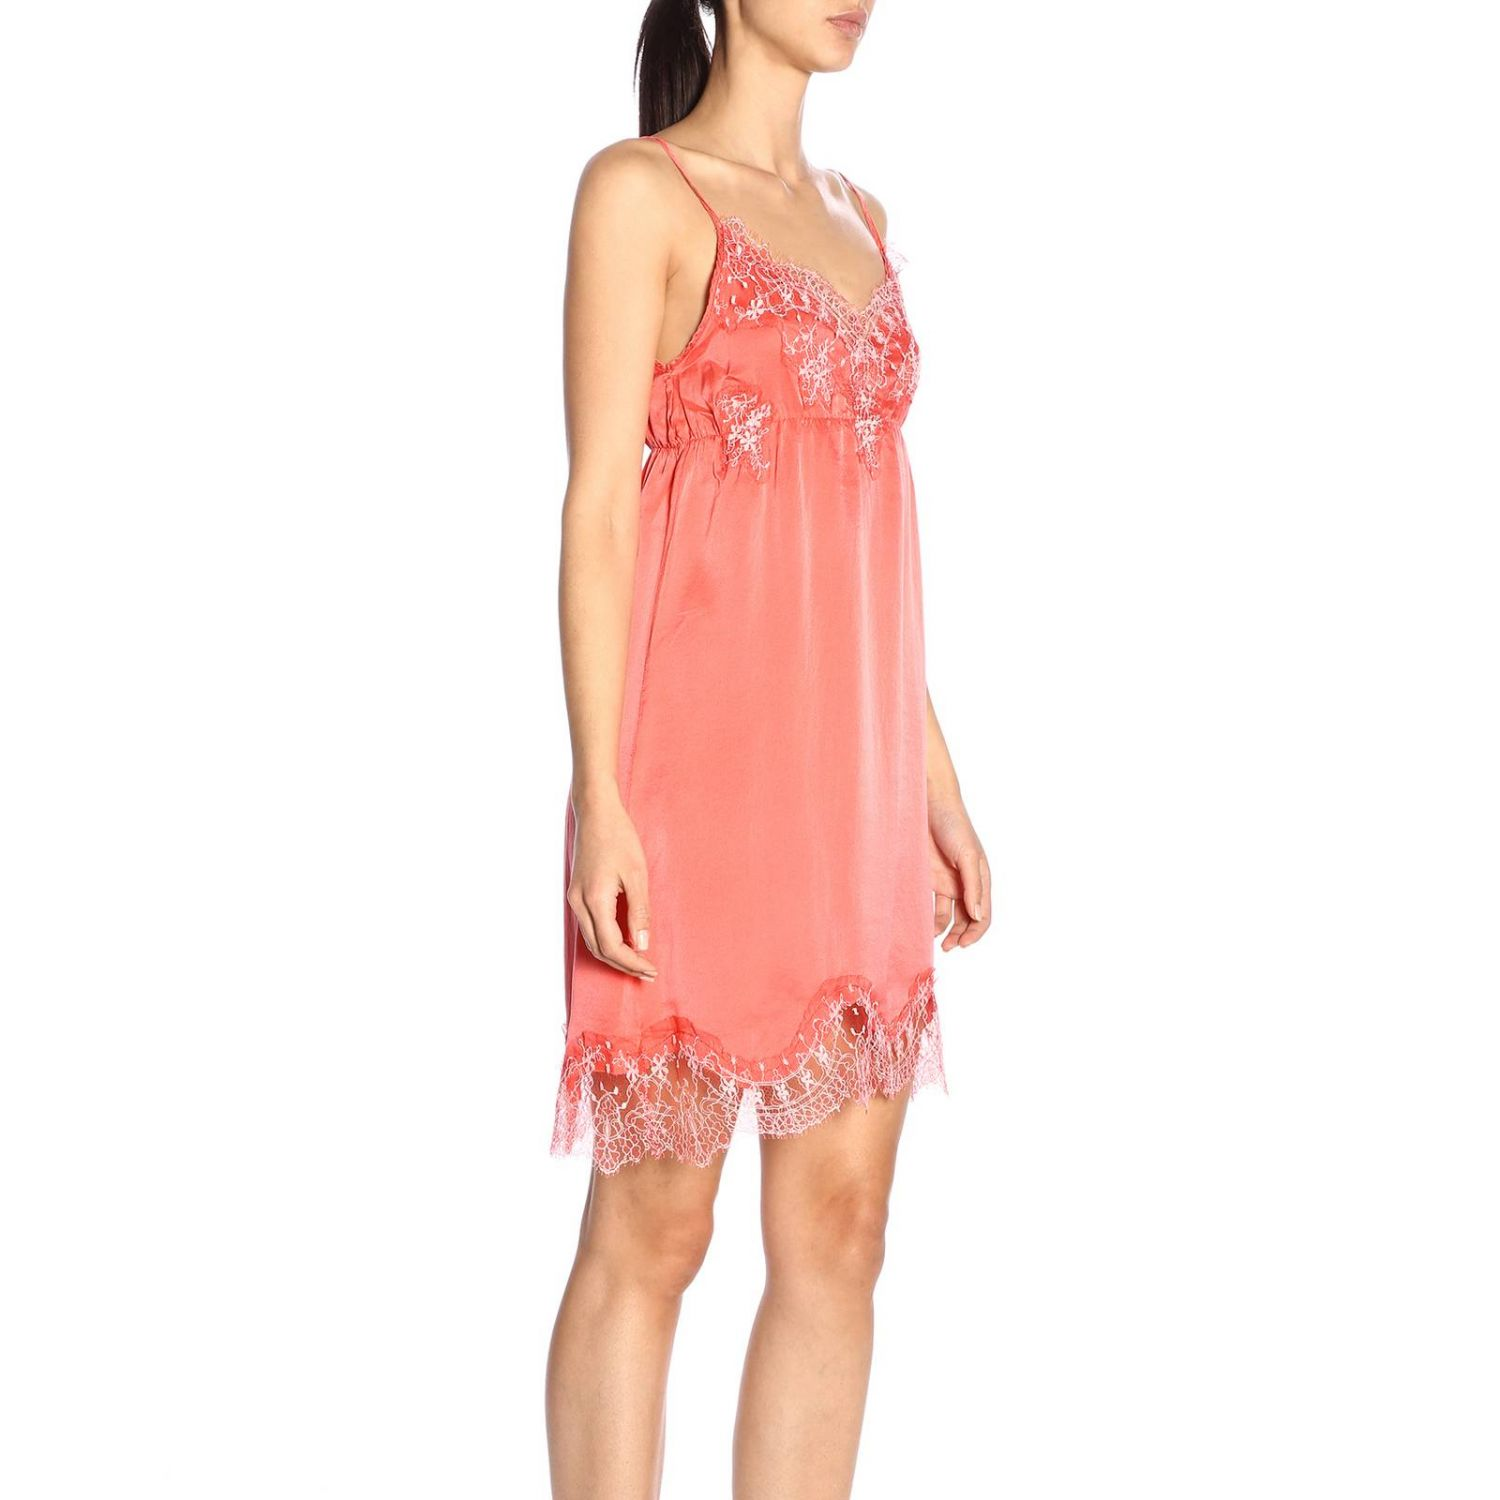 Intimo donna Pink Memories fuxia 2